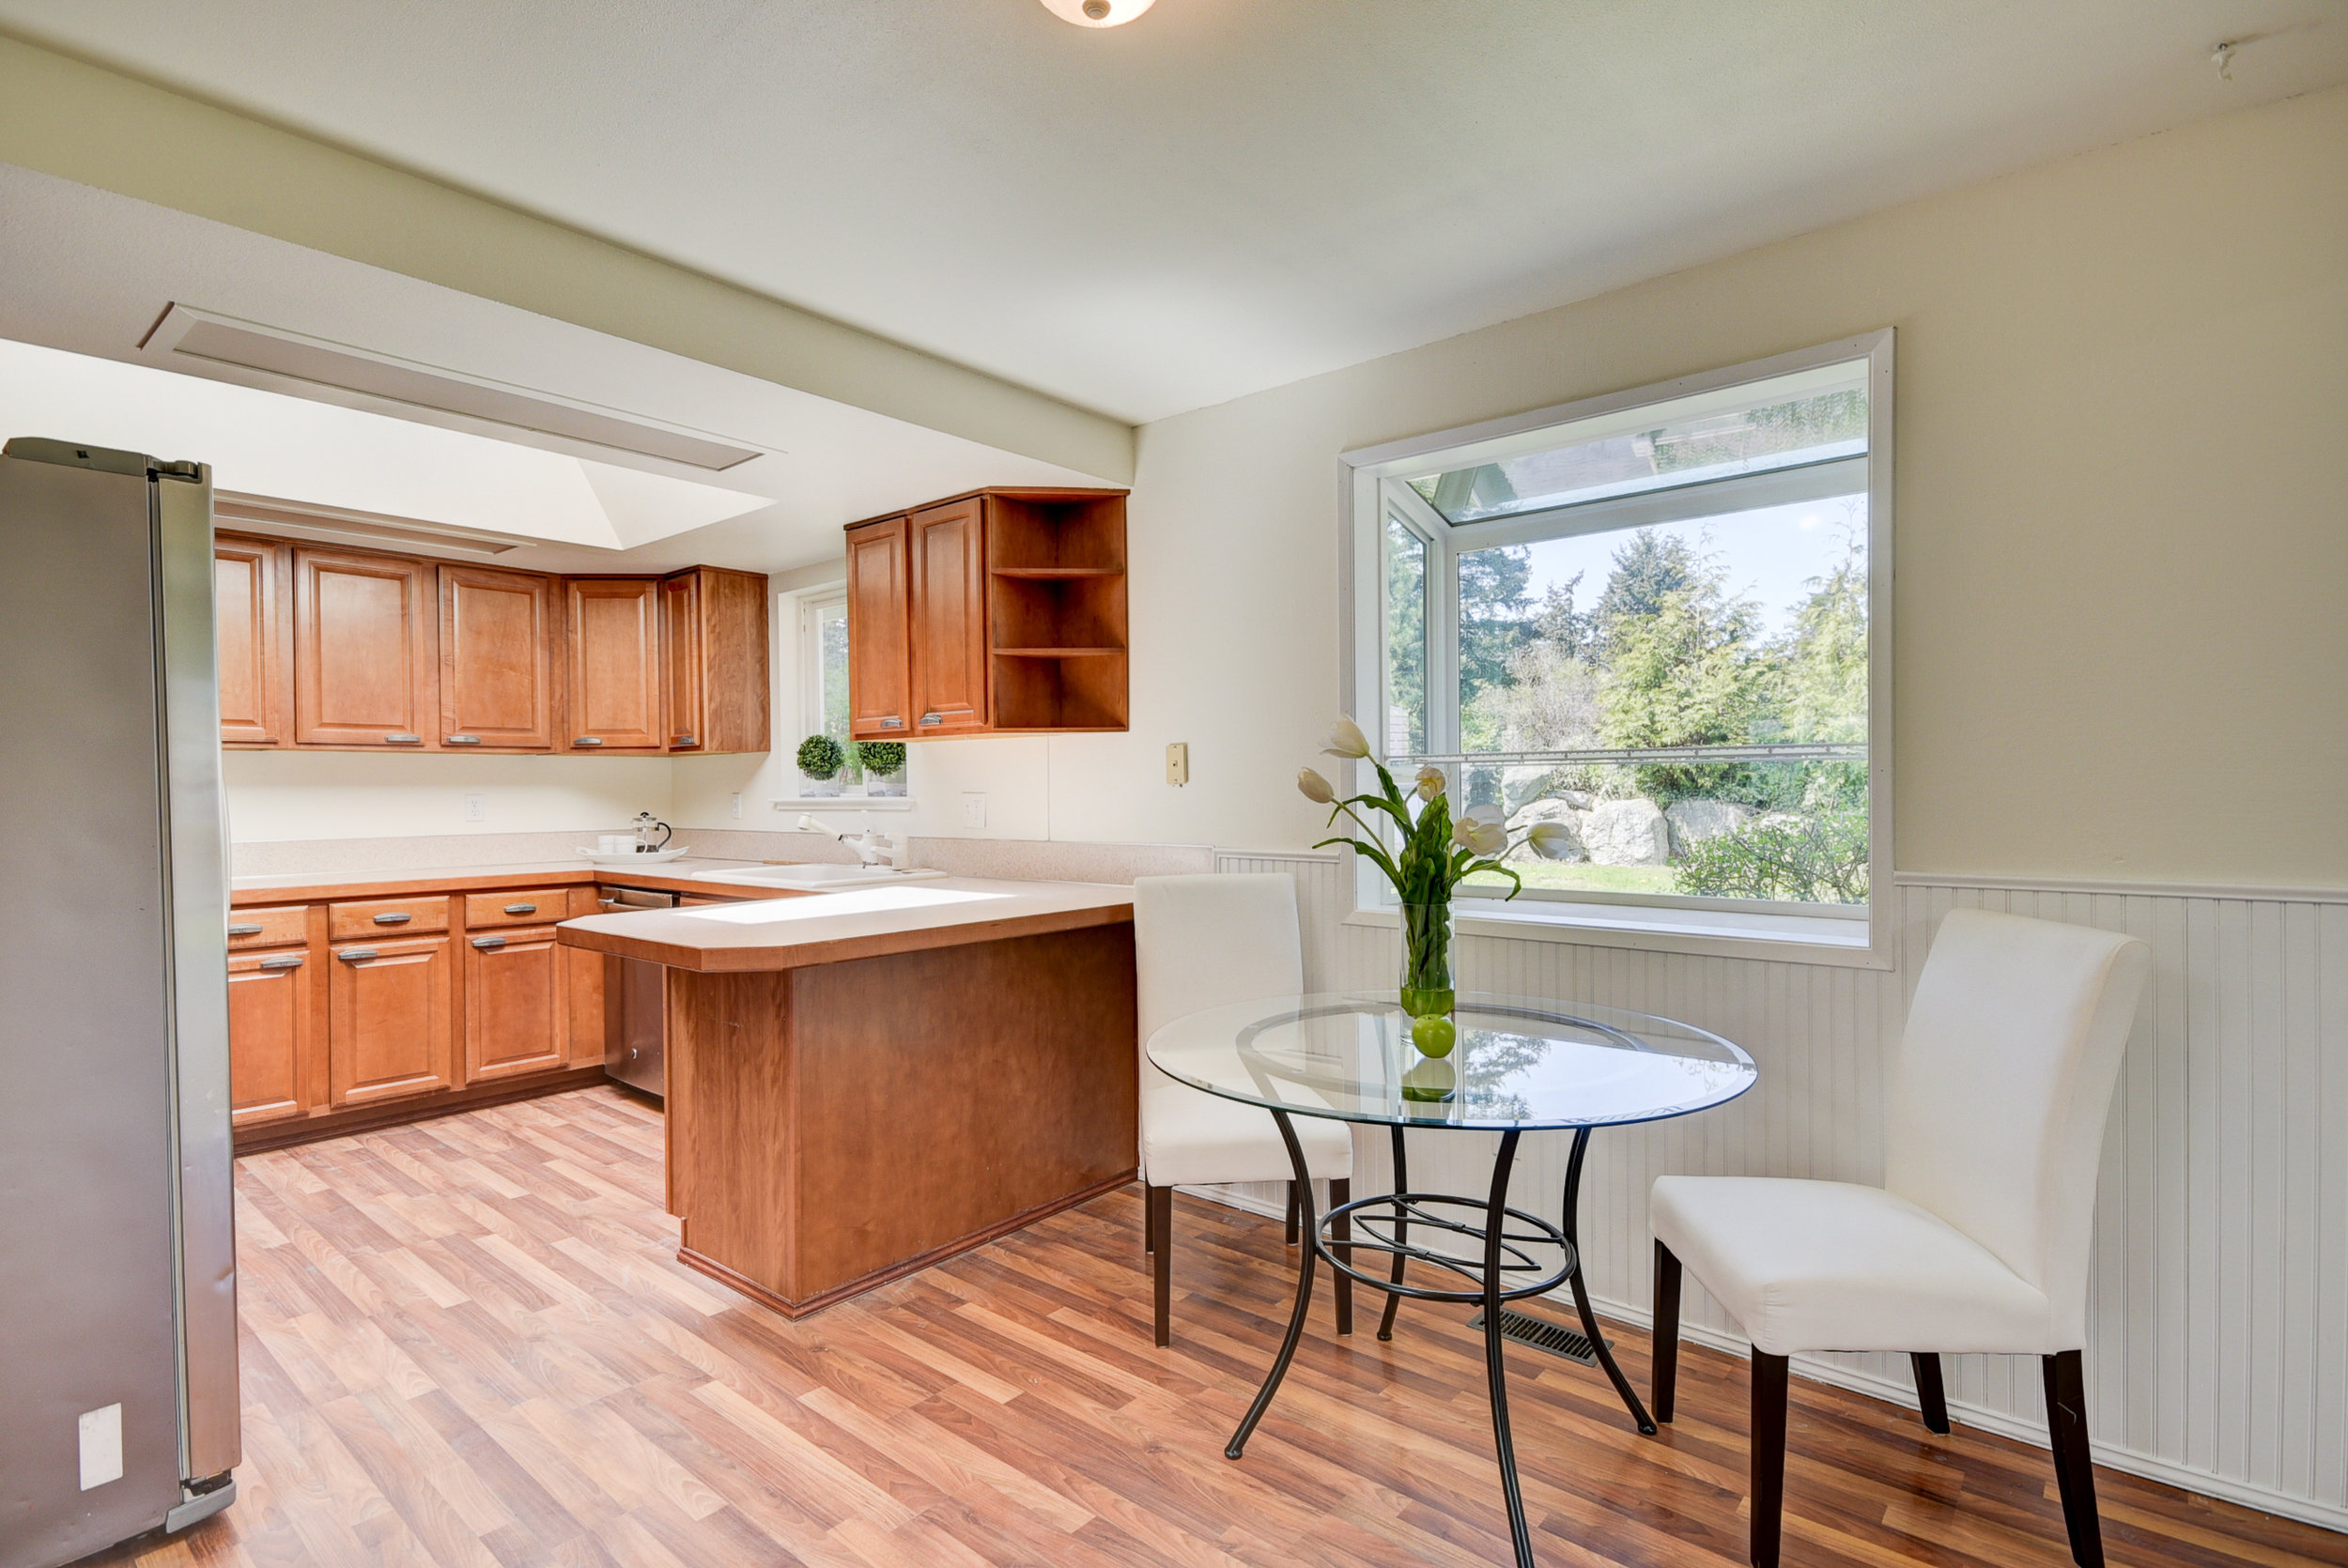 Maple cabinetry...stainless steel appliances, & another skylight & garden window let in tons of natural light...